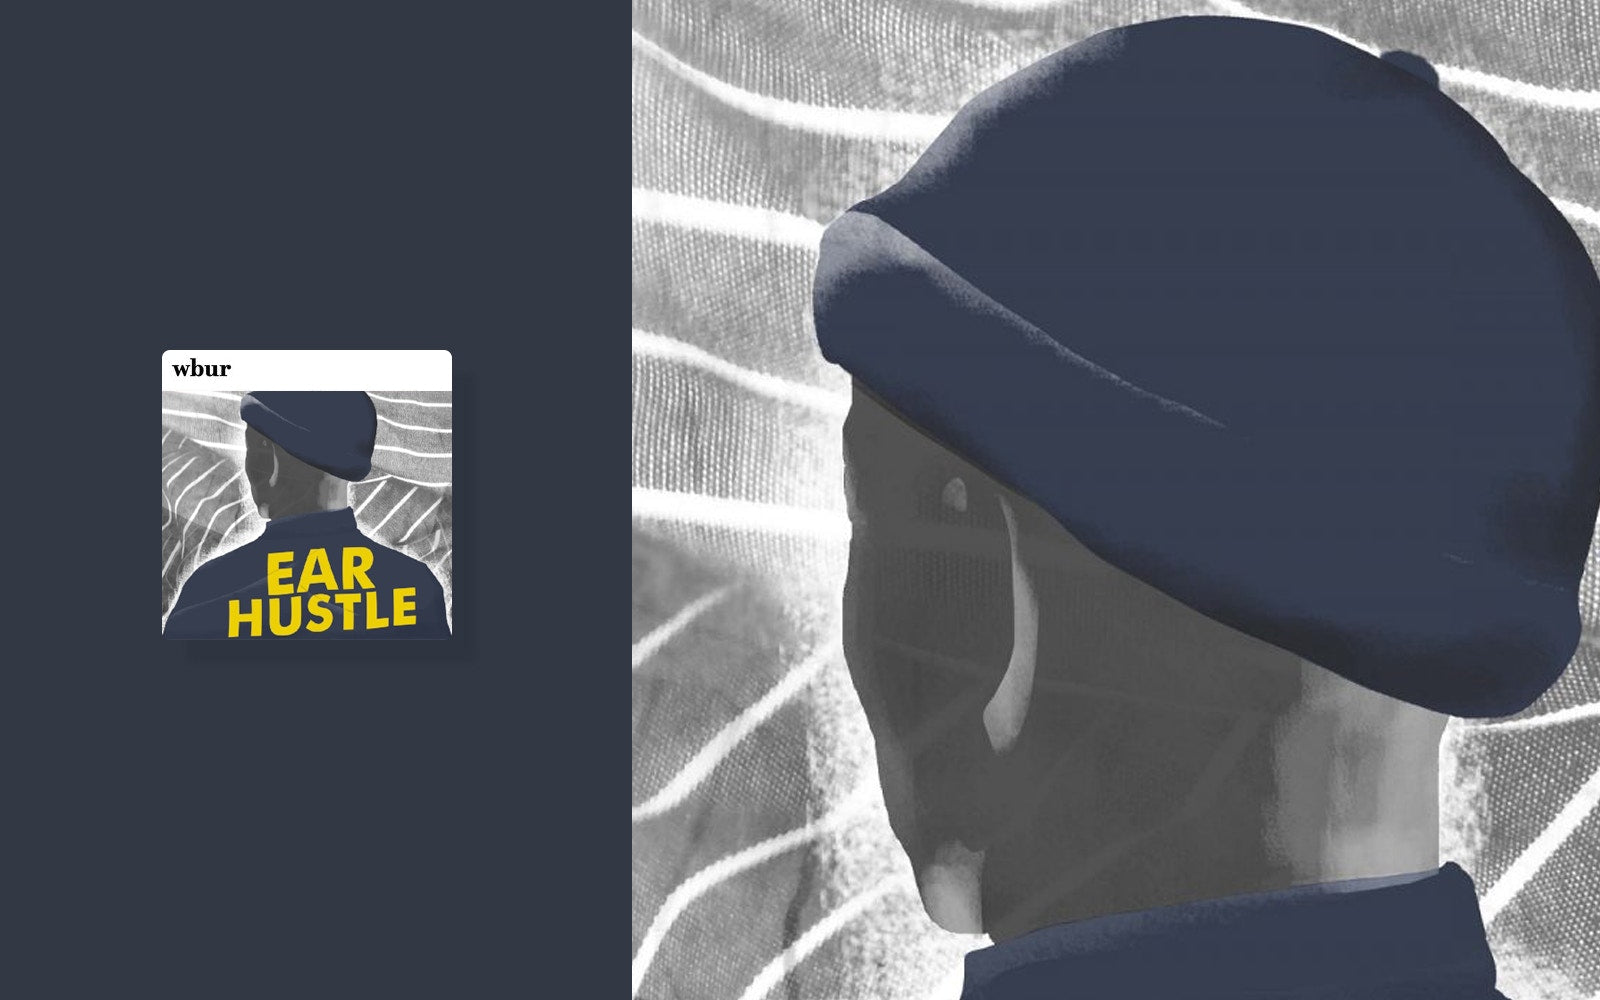 EAR HUSTLE:  A person wearing black cap